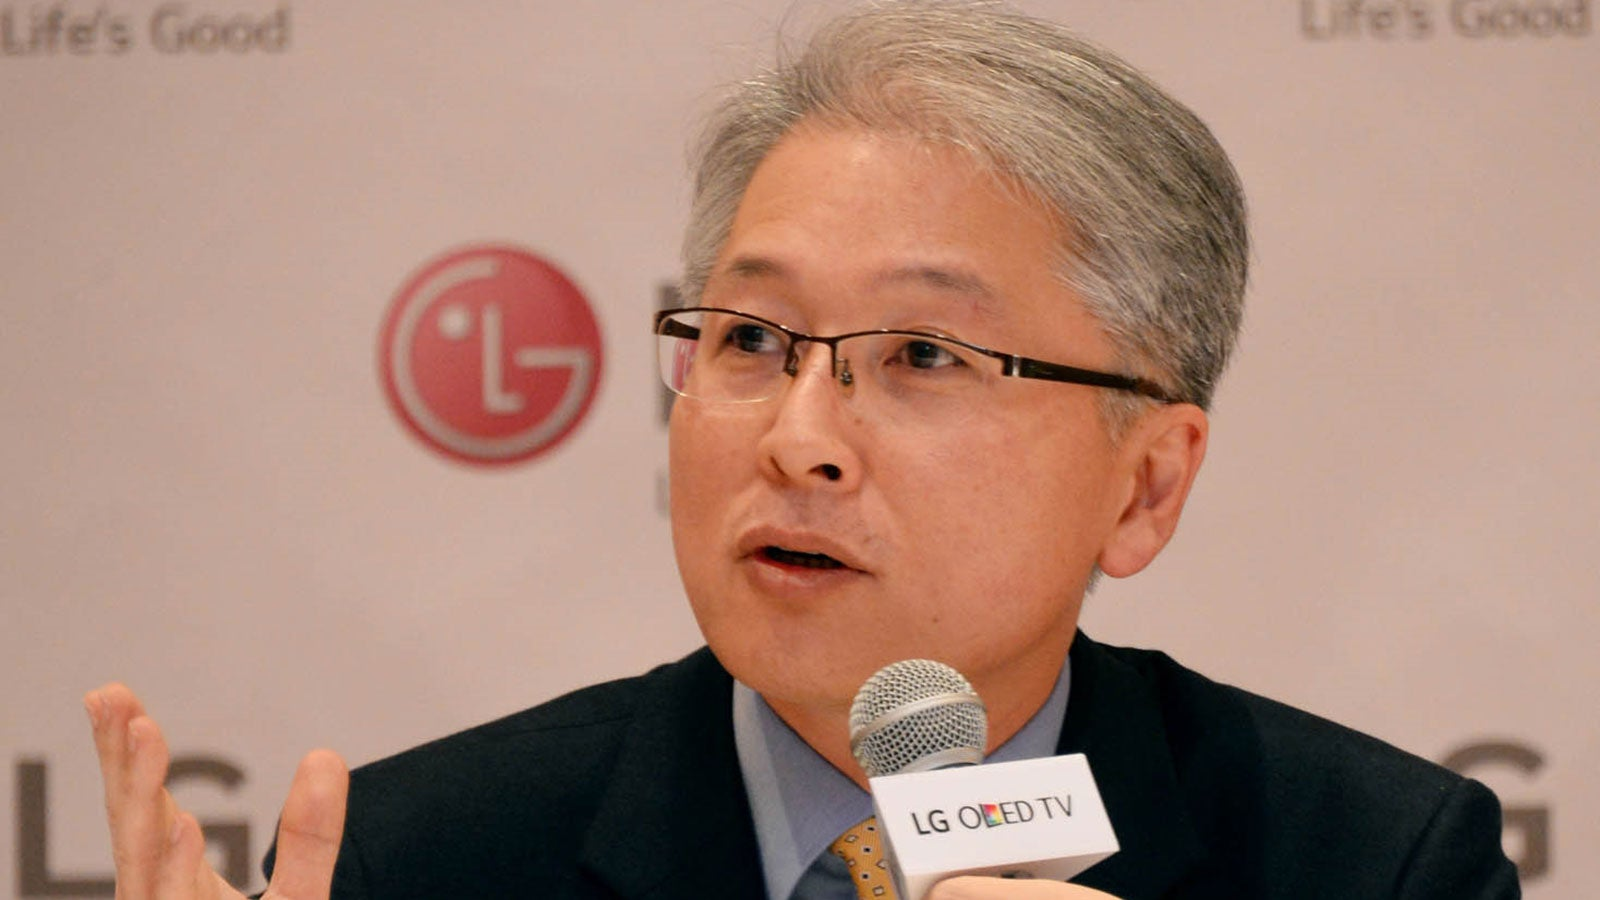 LG Thinks The Guy Who Runs Its Stellar TV Business Can Save Its Phones